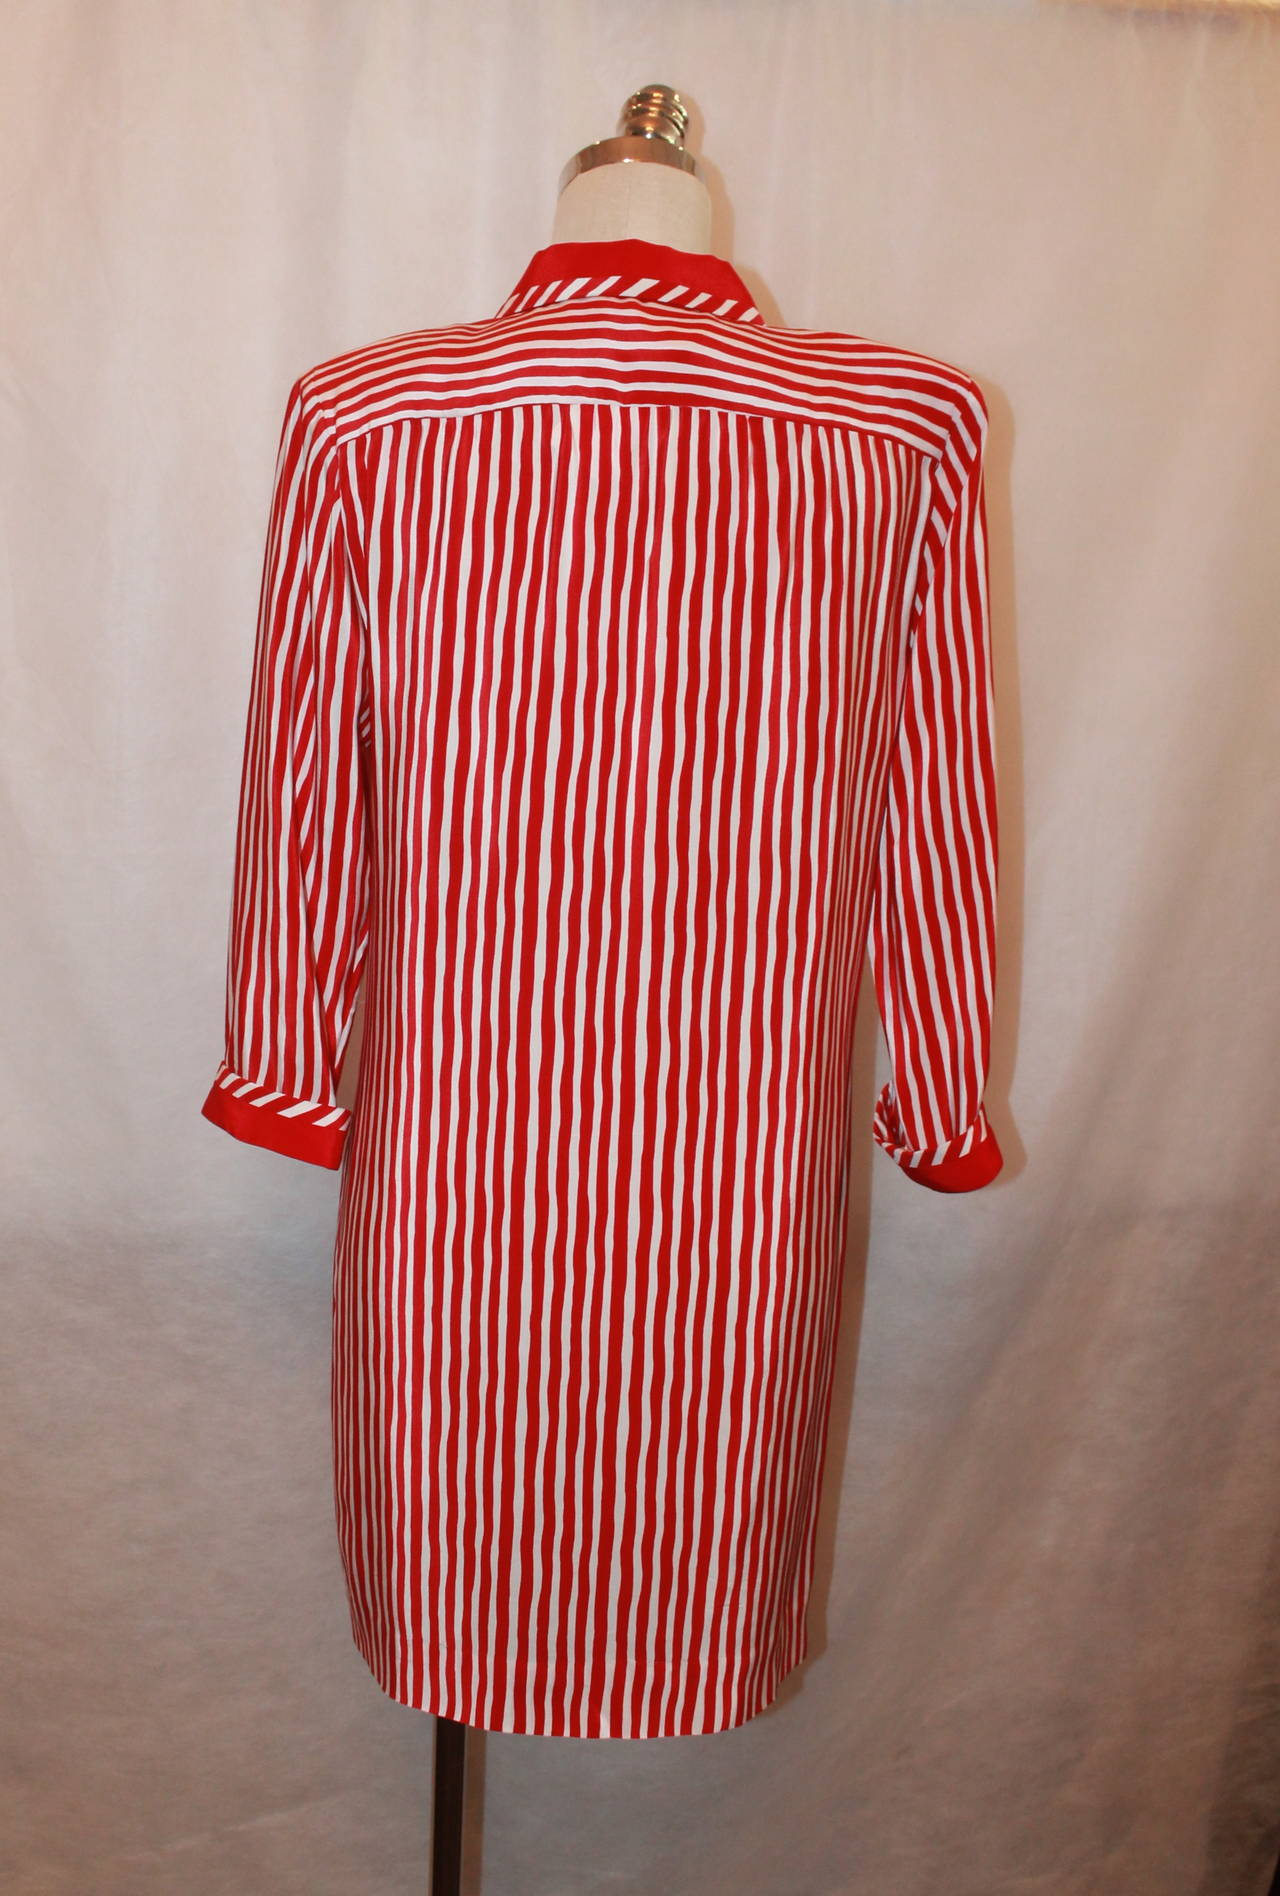 Vintage 1960s Adolfo Red and White Stripe Long Shirt Dress - M 3